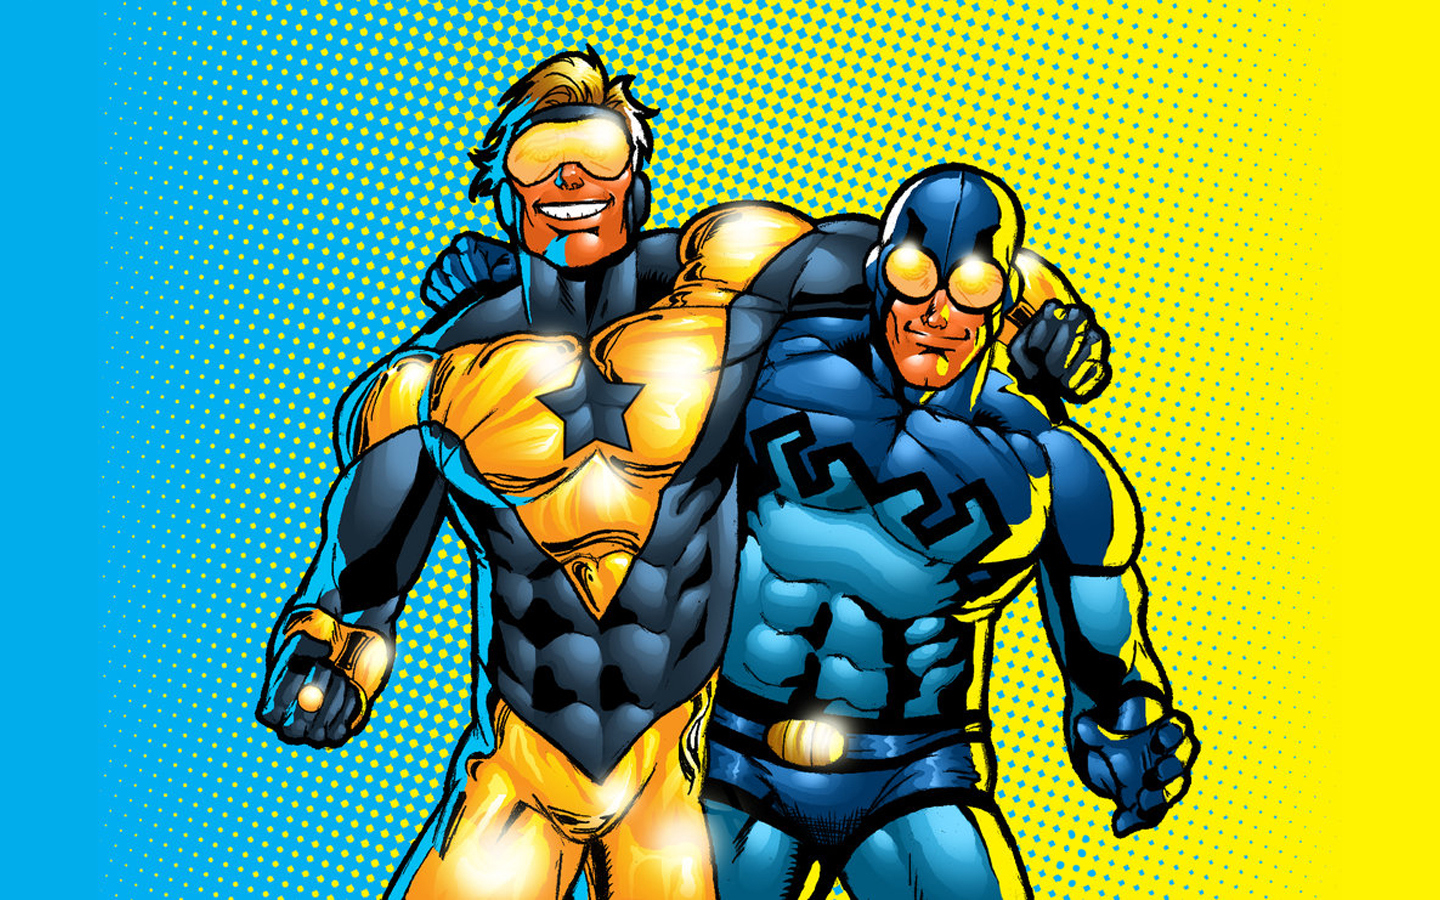 Booster Gold Wallpaper 13   1440 X 900 stmednet 1440x900